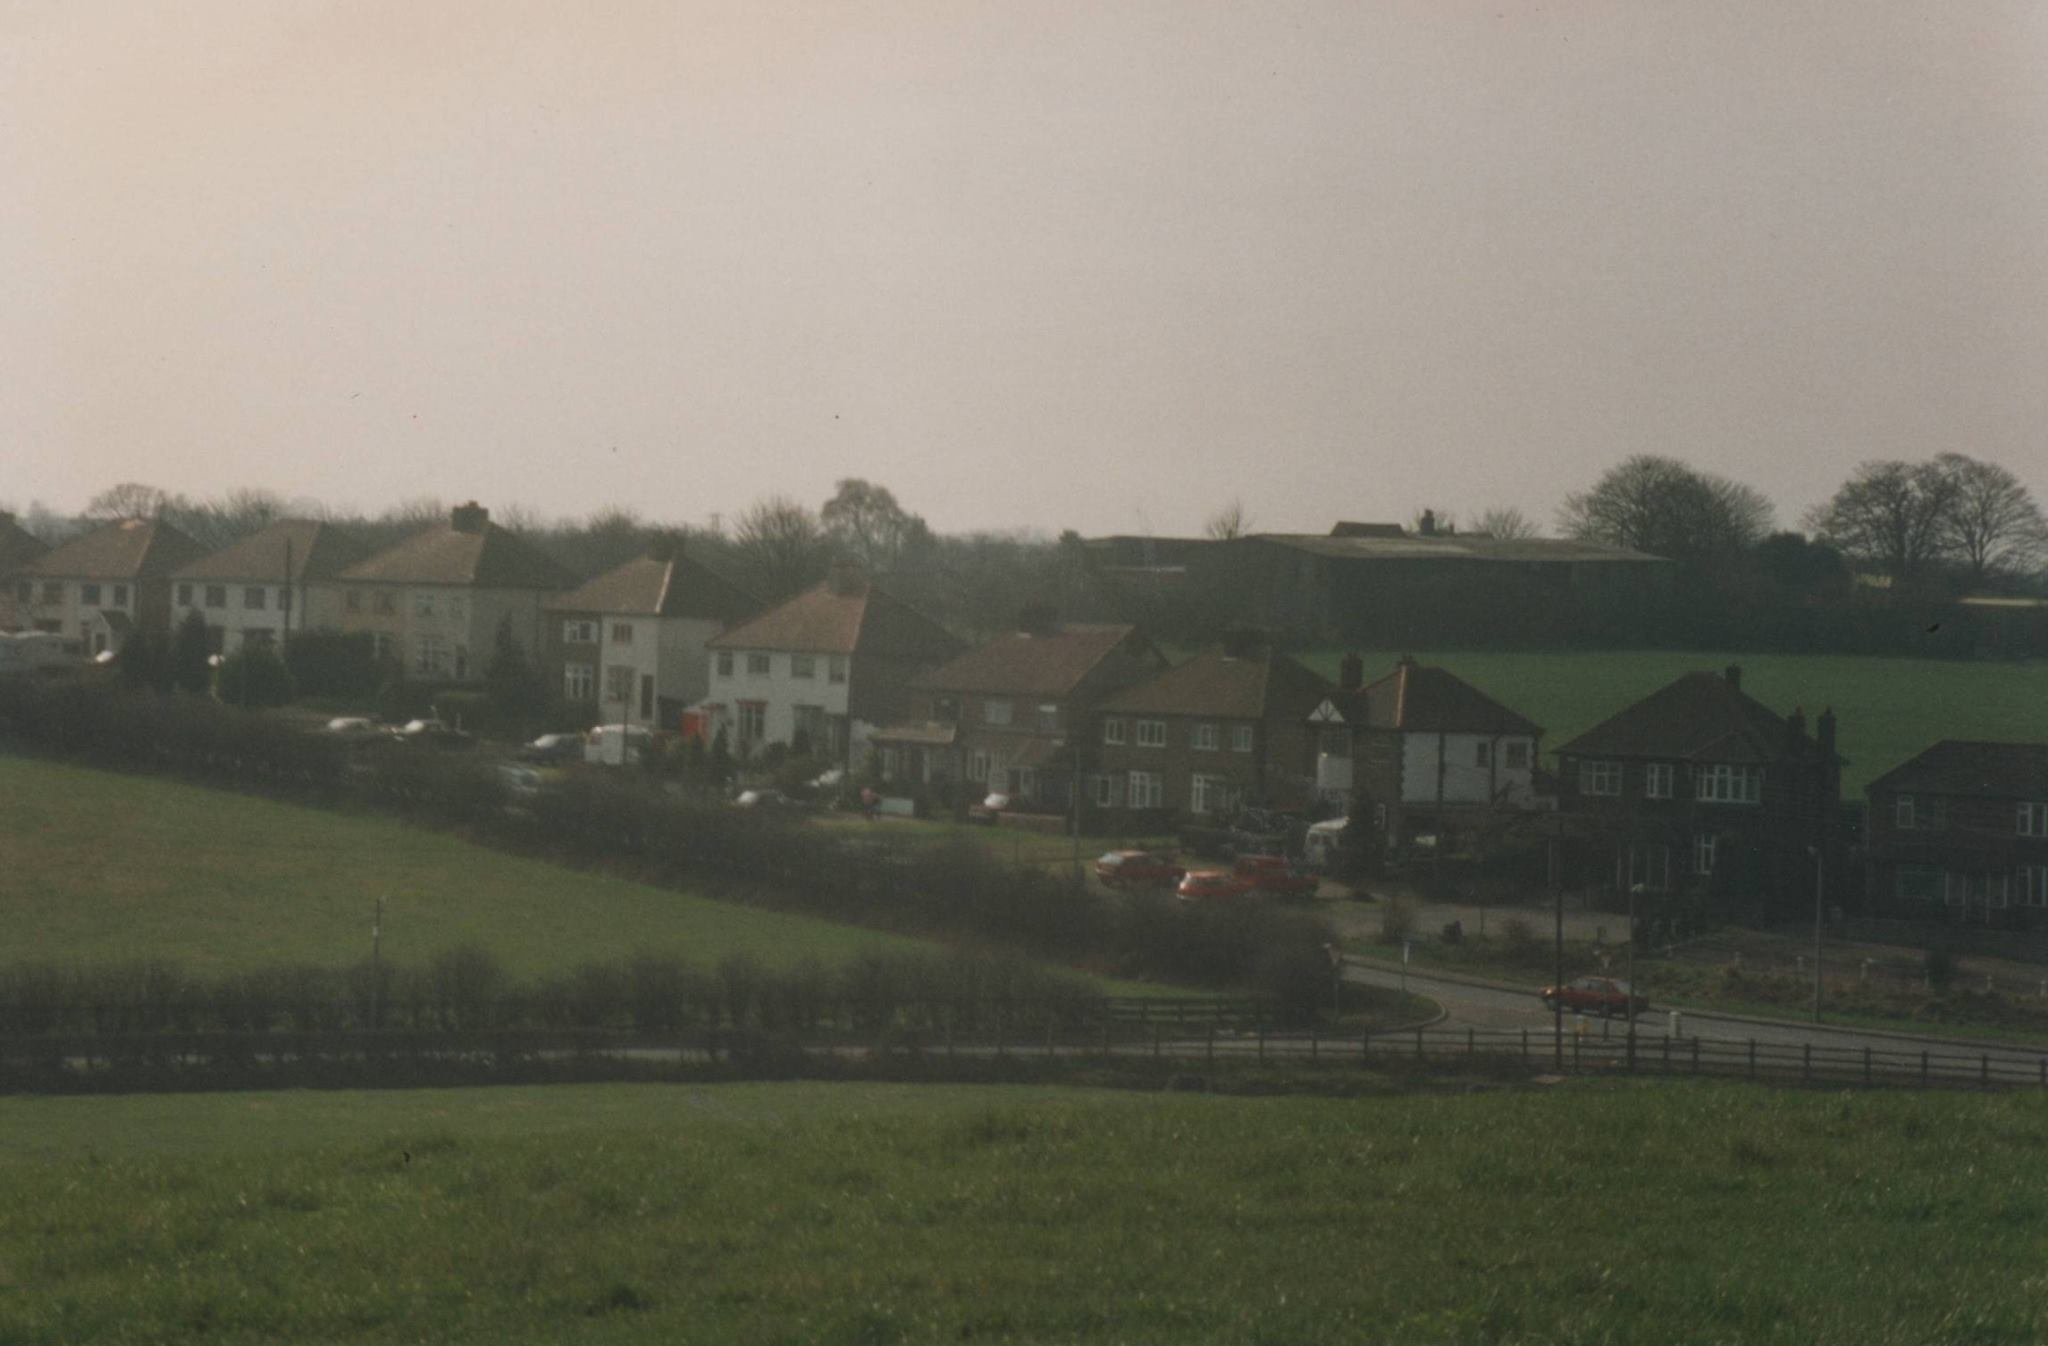 Ogley Hay Road, taken from the fields in Hammerwich 1993, before new roundabout